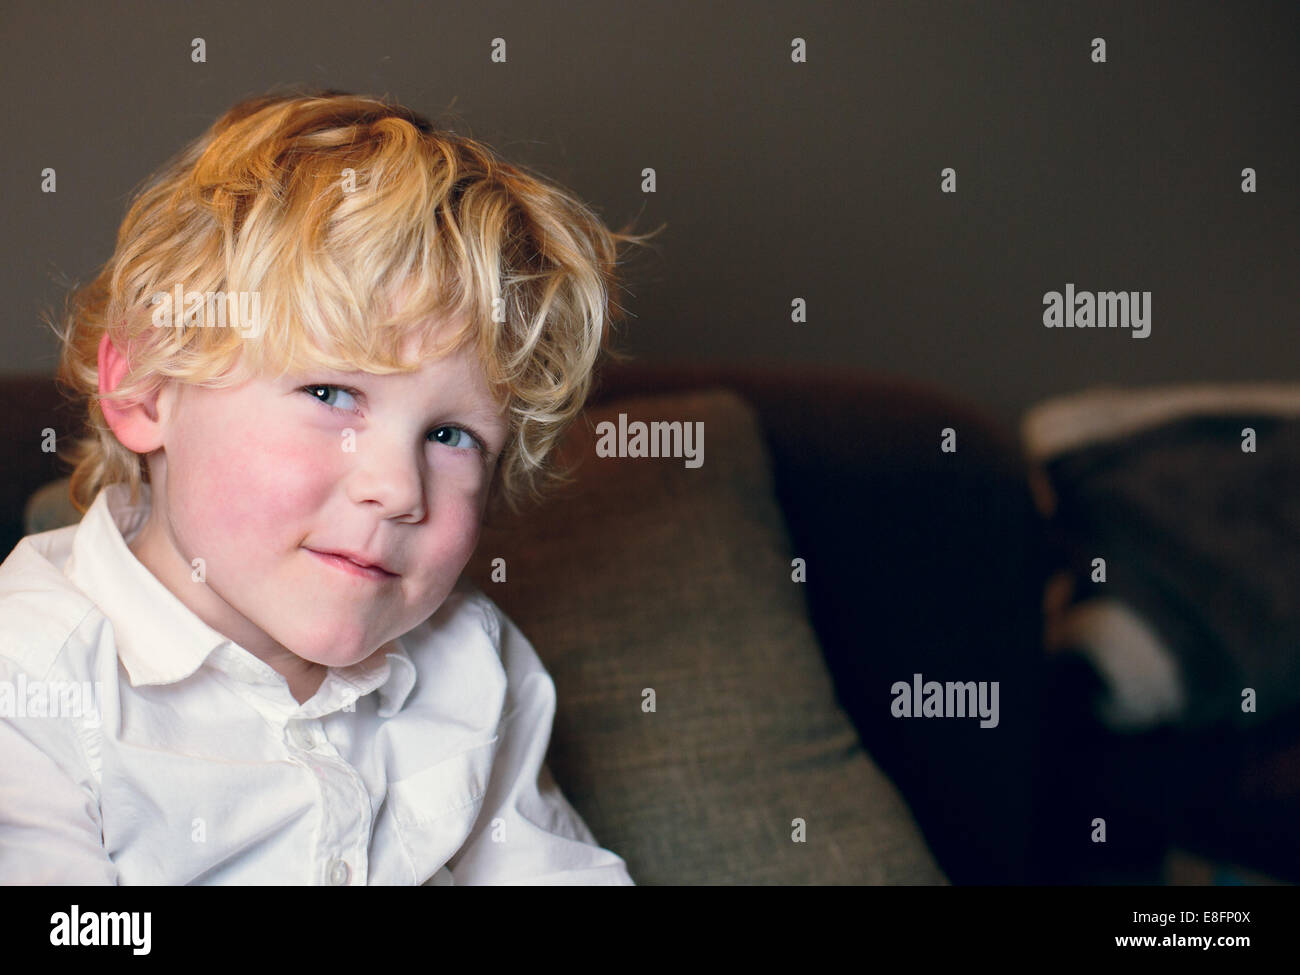 Netherlands, Blonde boy (4-5) in white shirt smiling - Stock Image